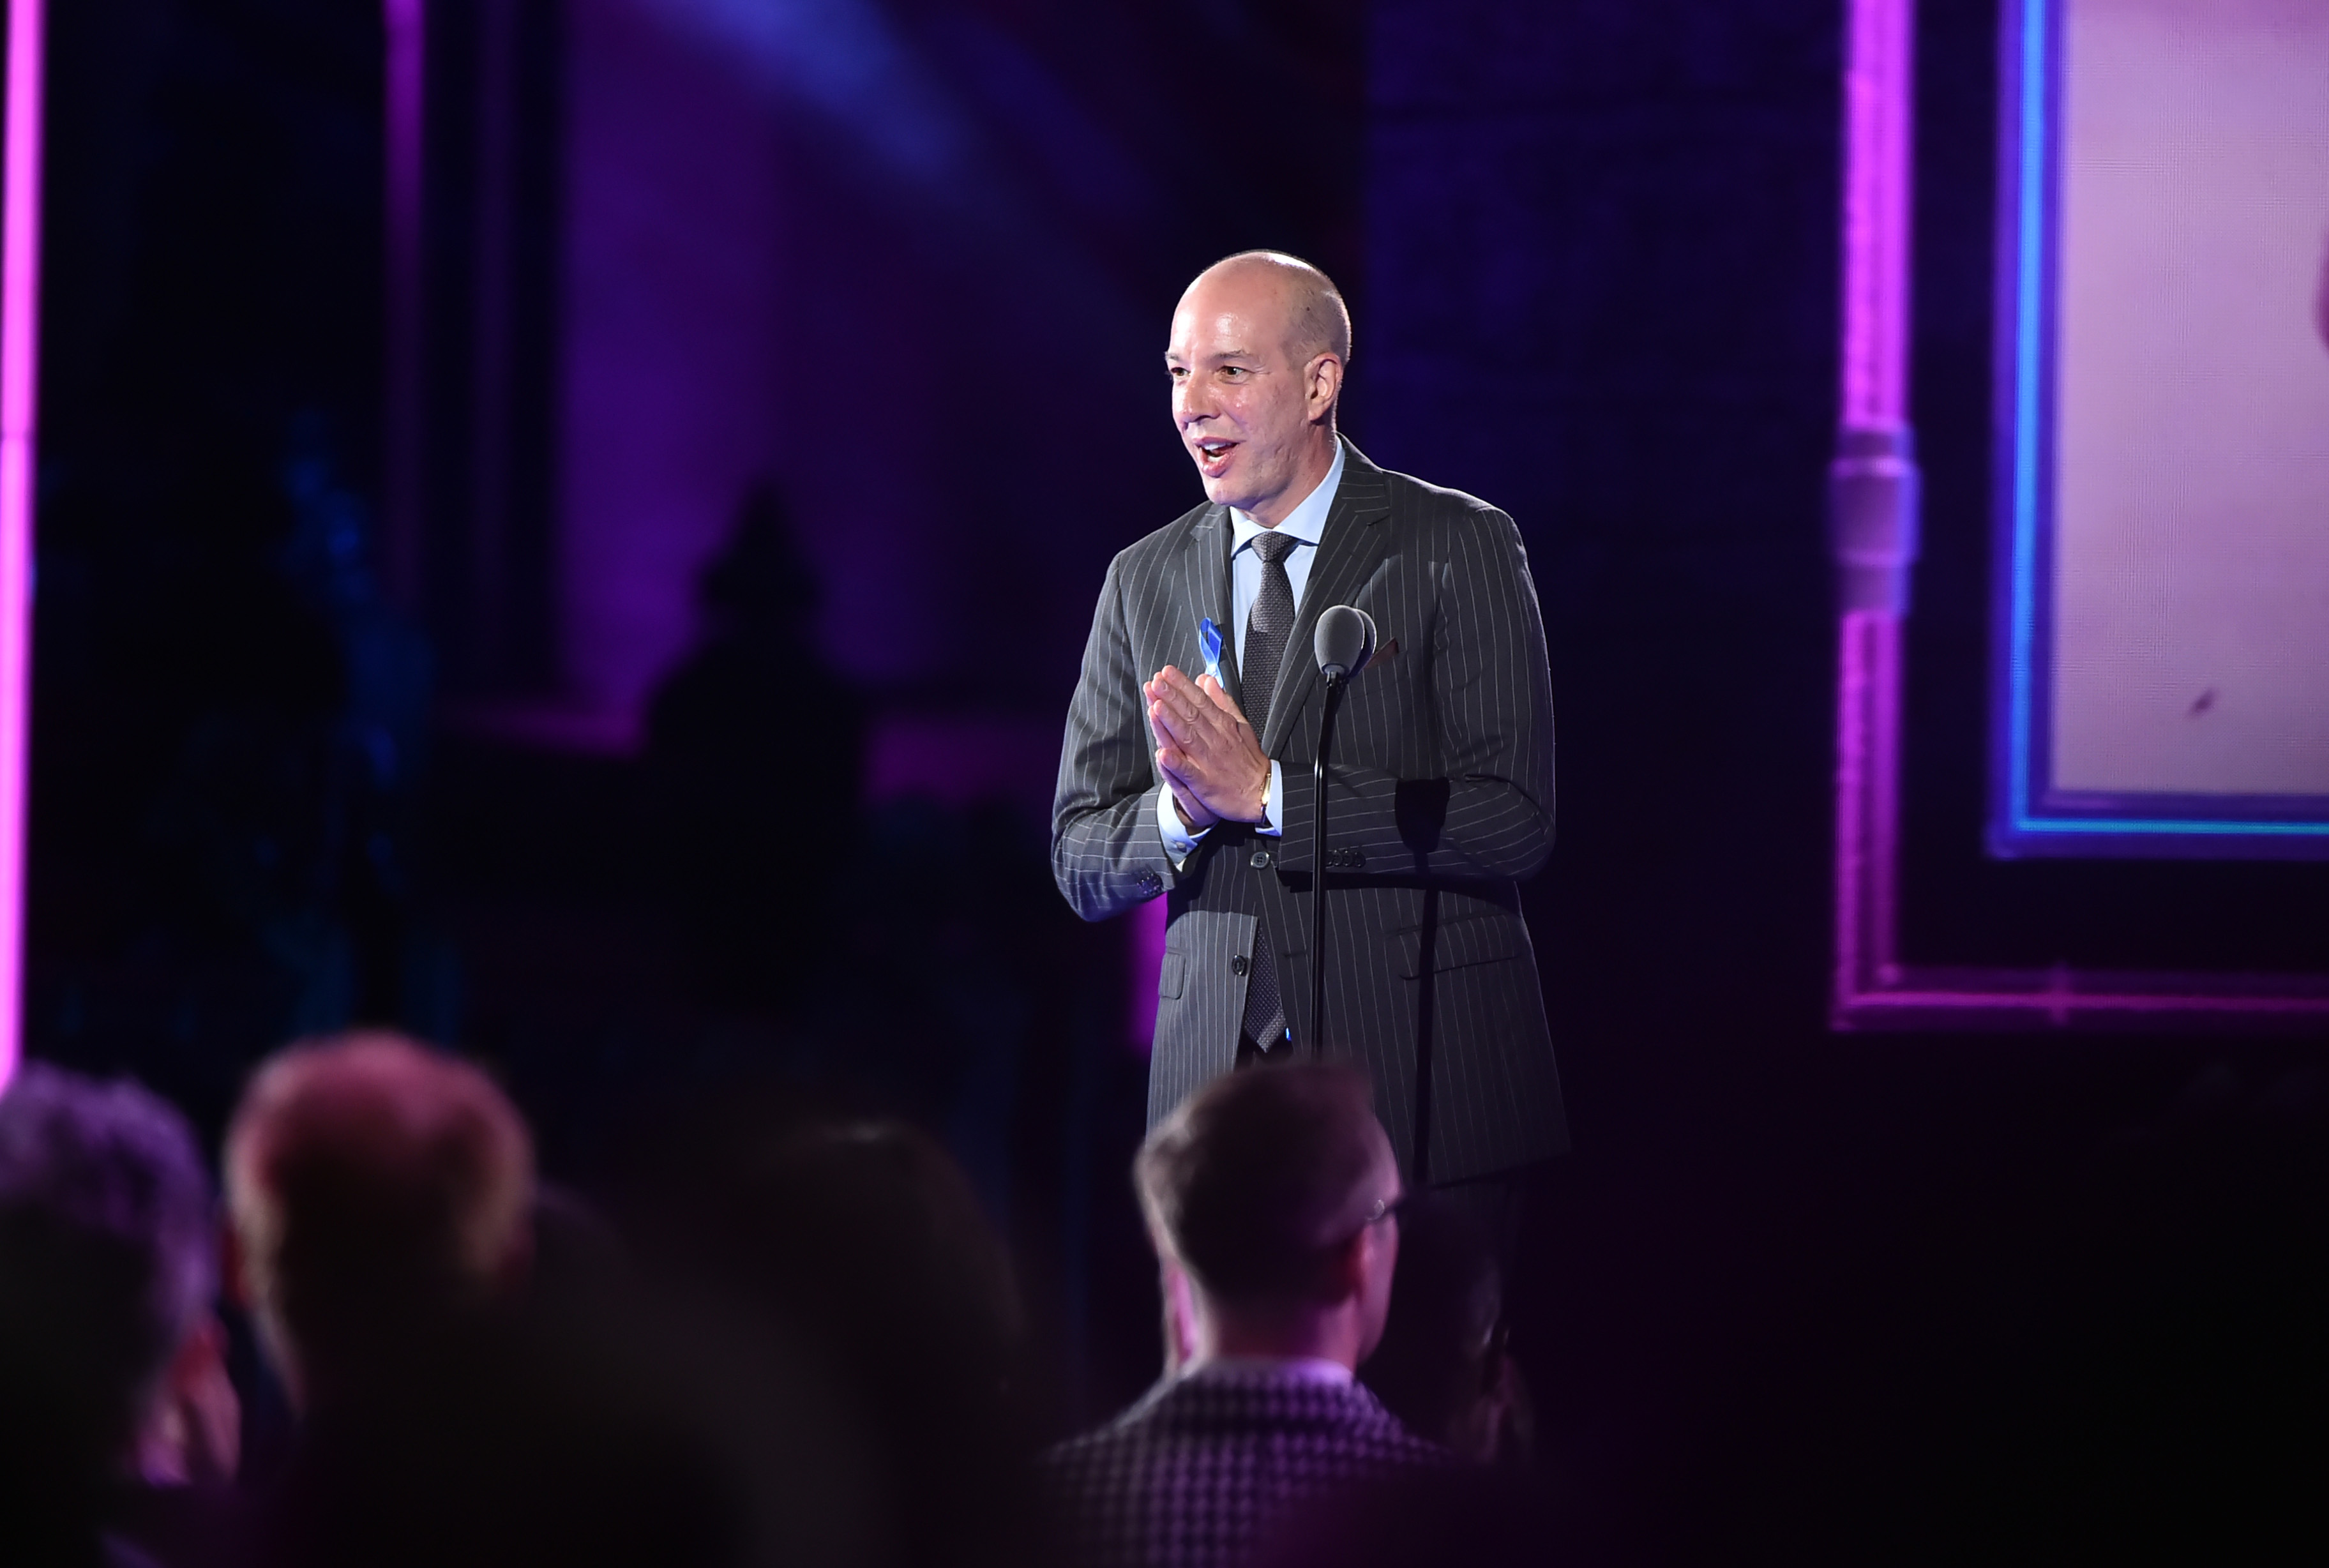 NEW YORK, NY - JUNE 21: Honoree, Executive Director of the American Civil Liberties Union Anthony D. Romero speaks on stage during VH1 Trailblazer Honors 2018 at The Cathedral of St. John the Divine on June 21, 2018 in New York City. (Photo by Theo Wargo/Getty Images for VH1 Trailblazer Honors)